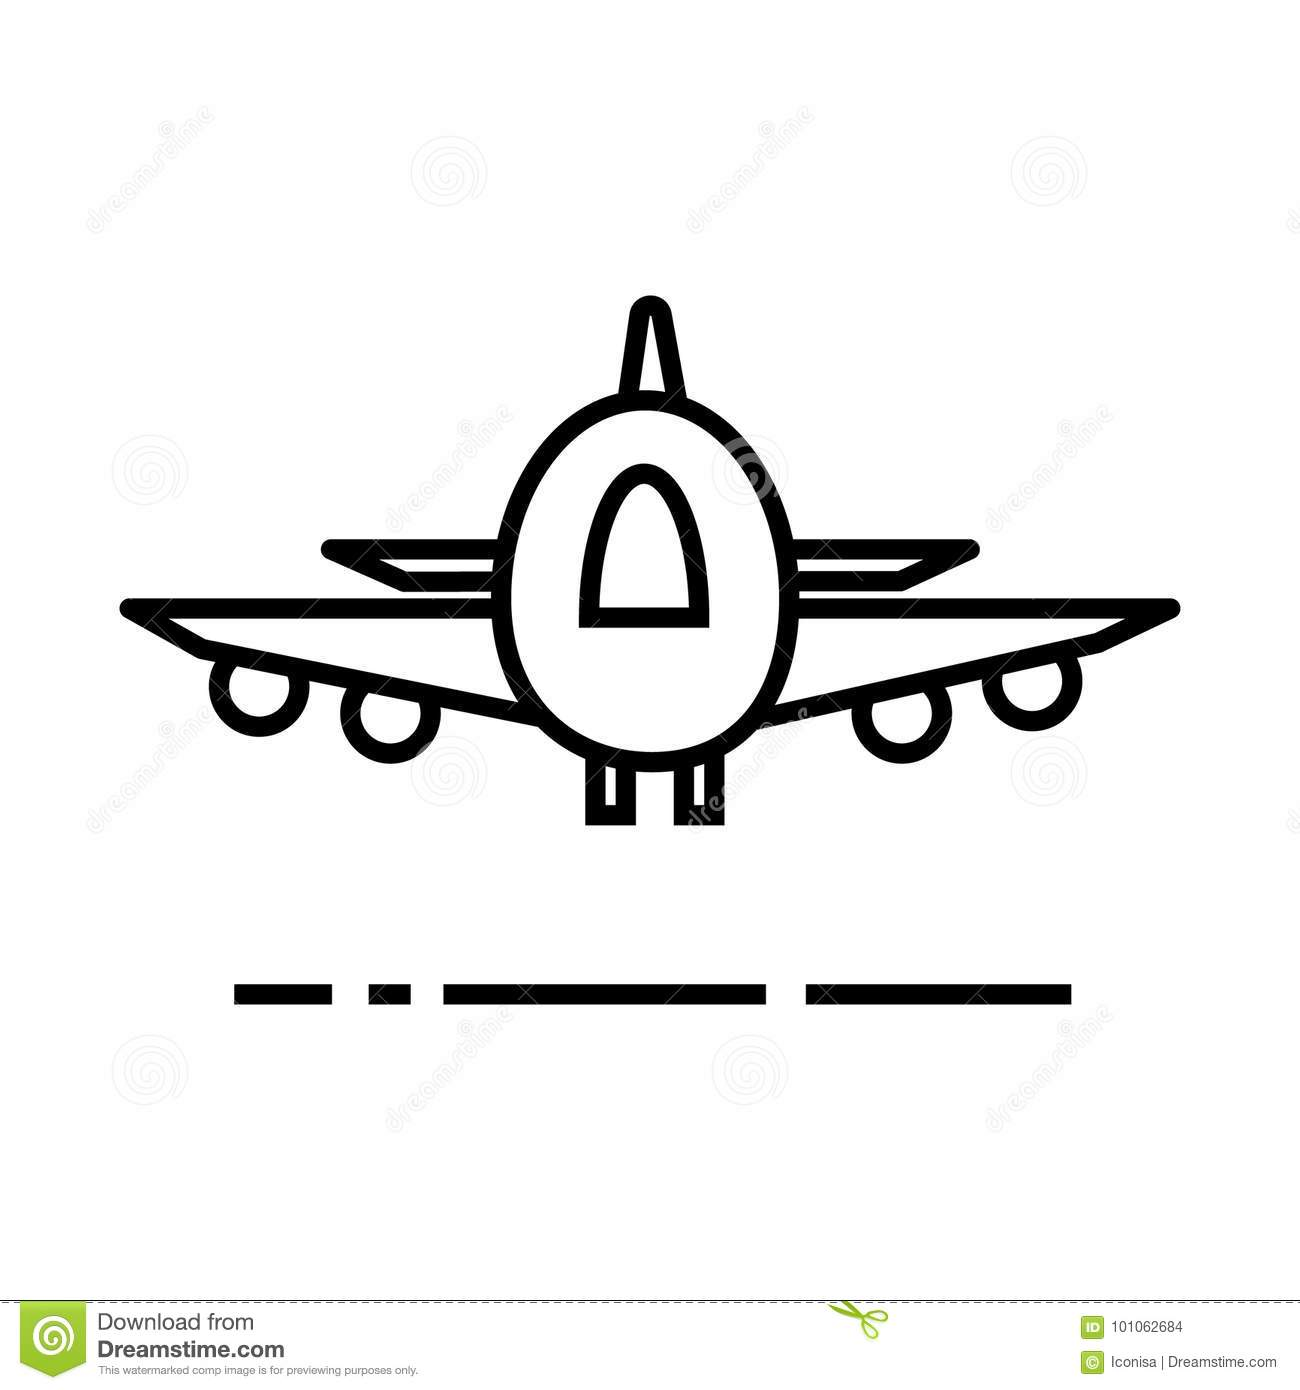 Plane Airoport Fast Delivery Vector Line Icon Sign